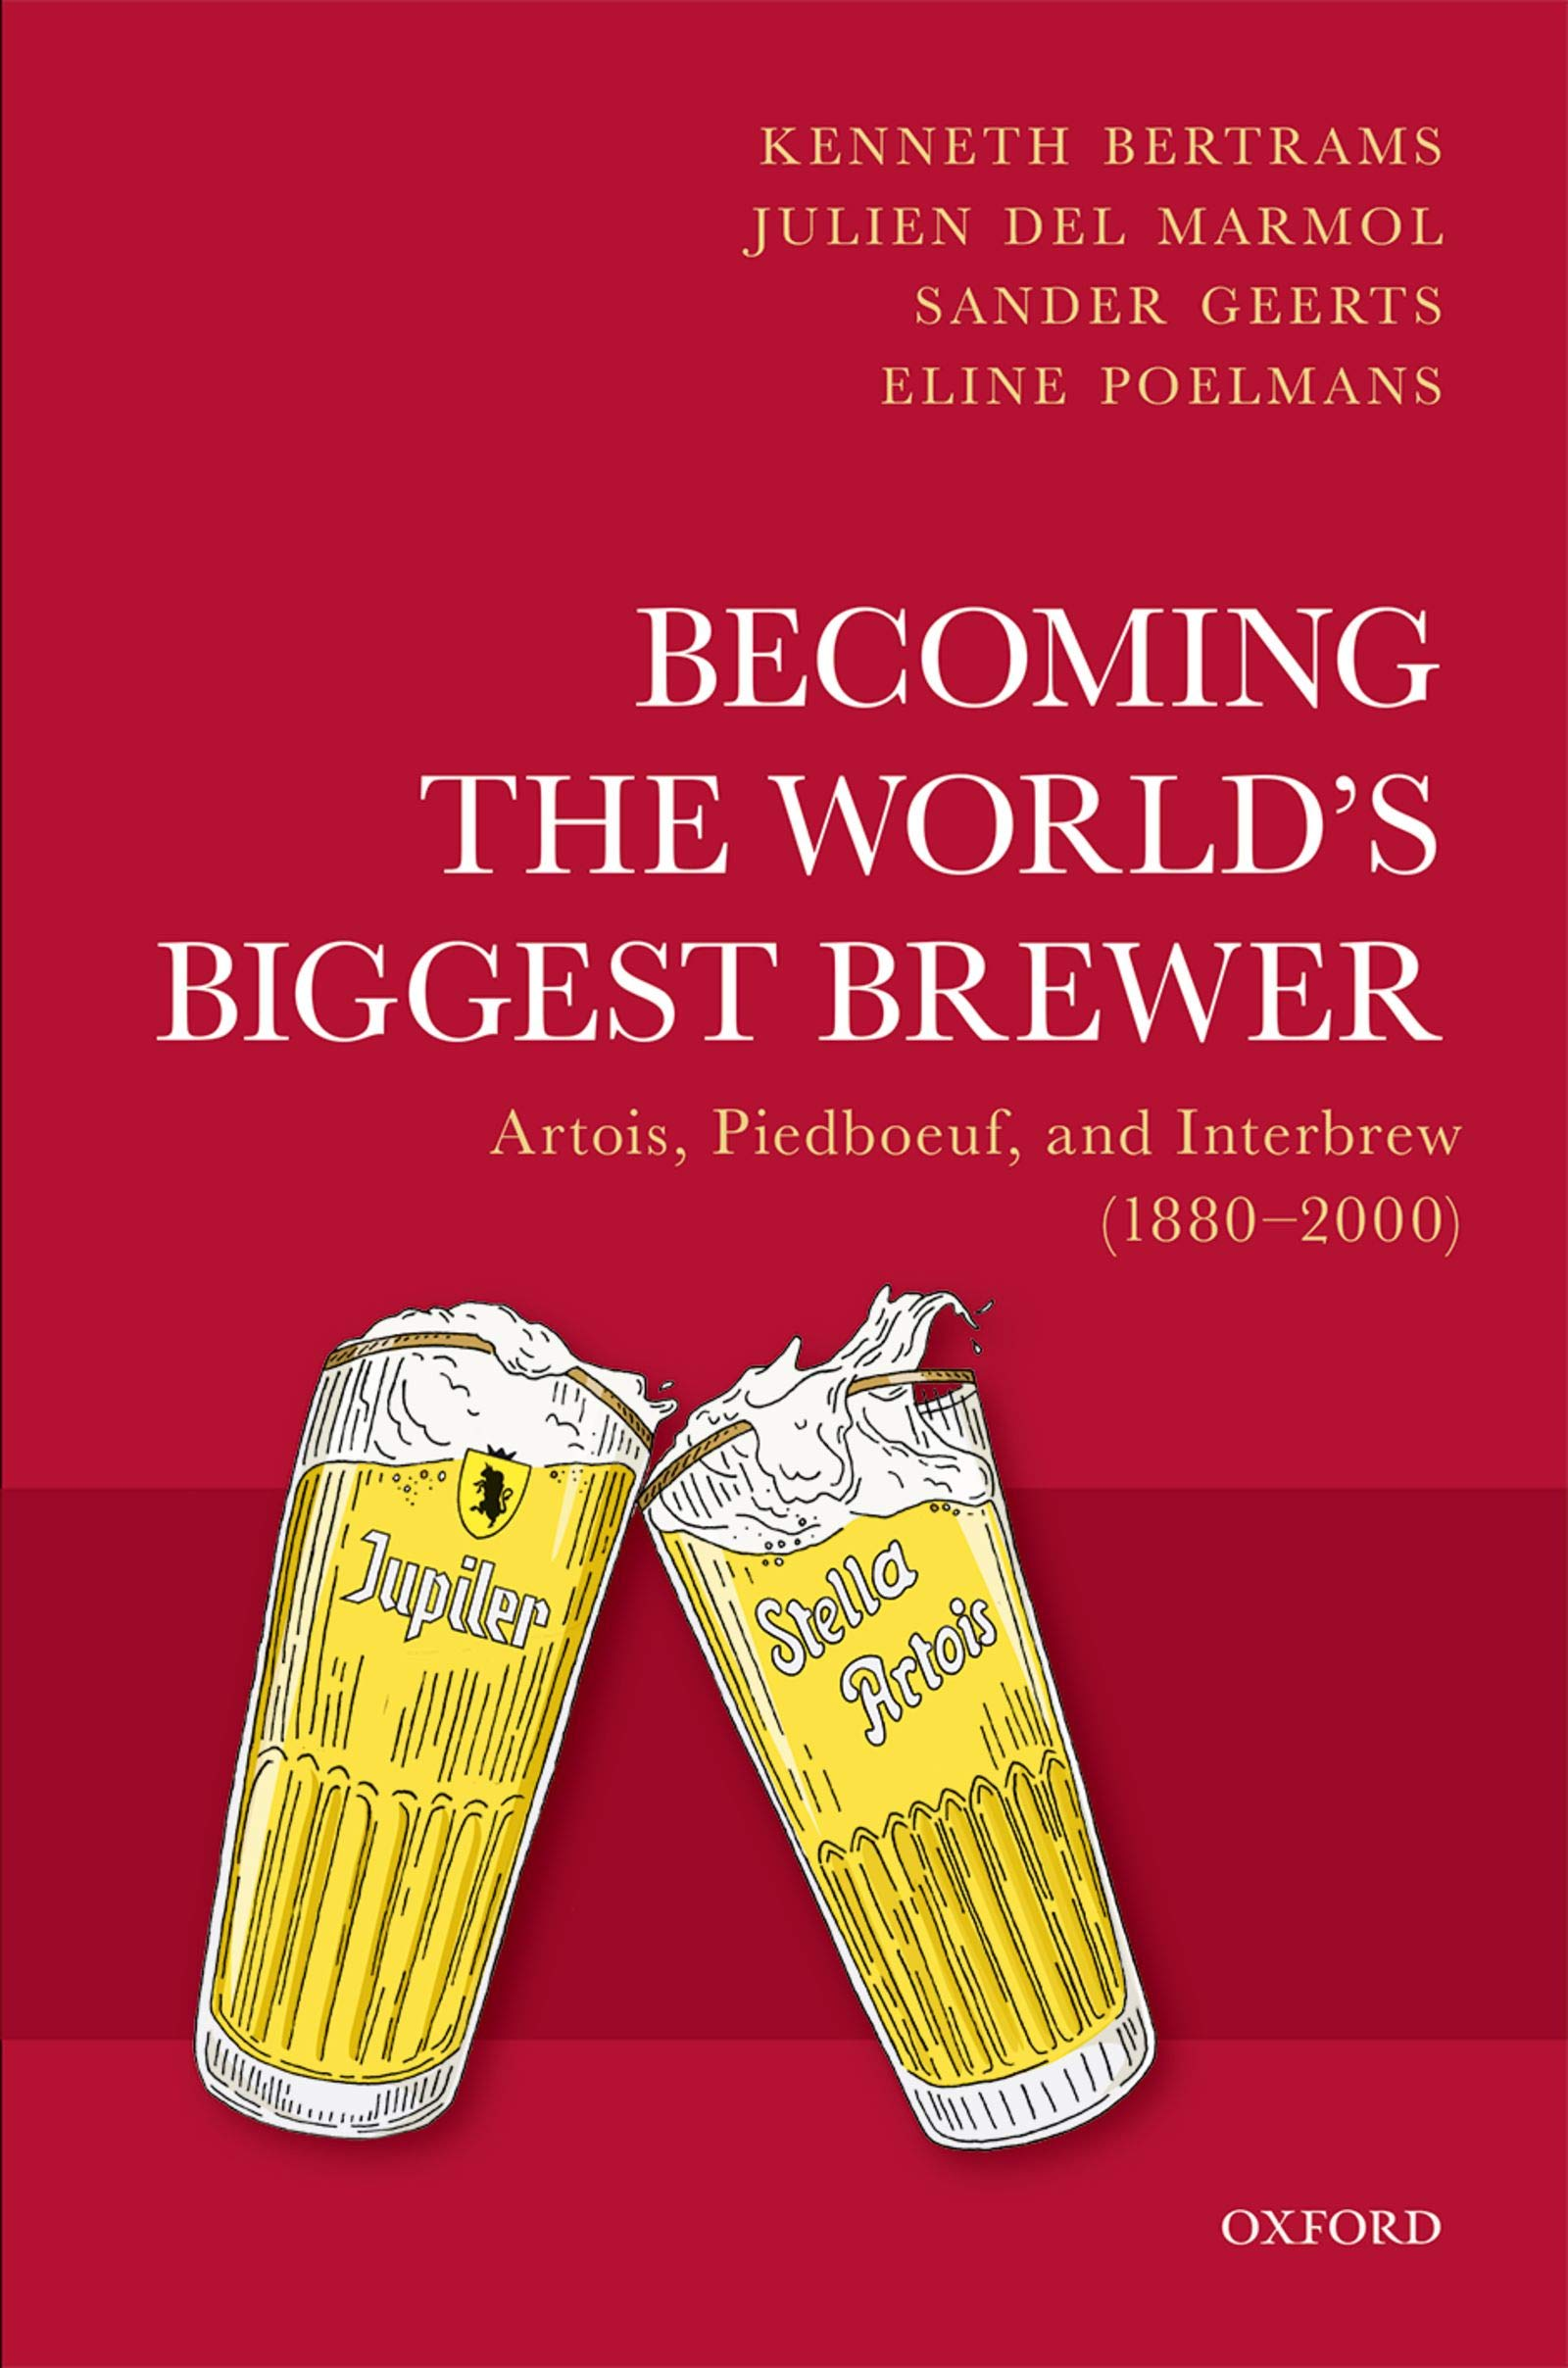 Image OfBecoming The World's Biggest Brewer: Artois, Piedboeuf, And Interbrew (1880-2000) (English Edition)